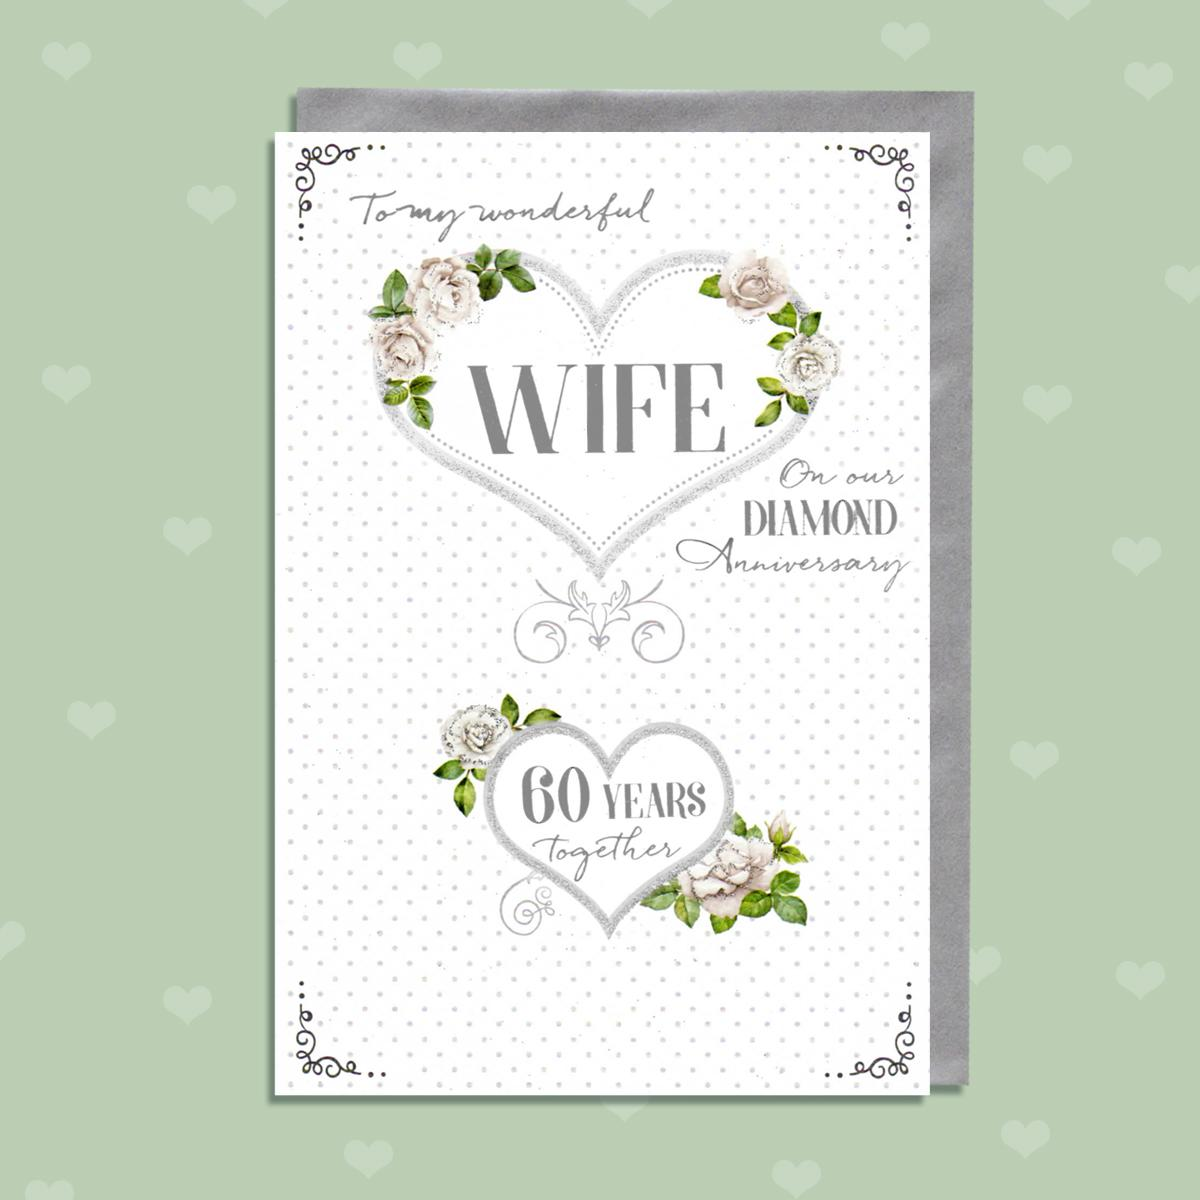 Wife 60th Anniversary Card Alongside Its Silver Envelope